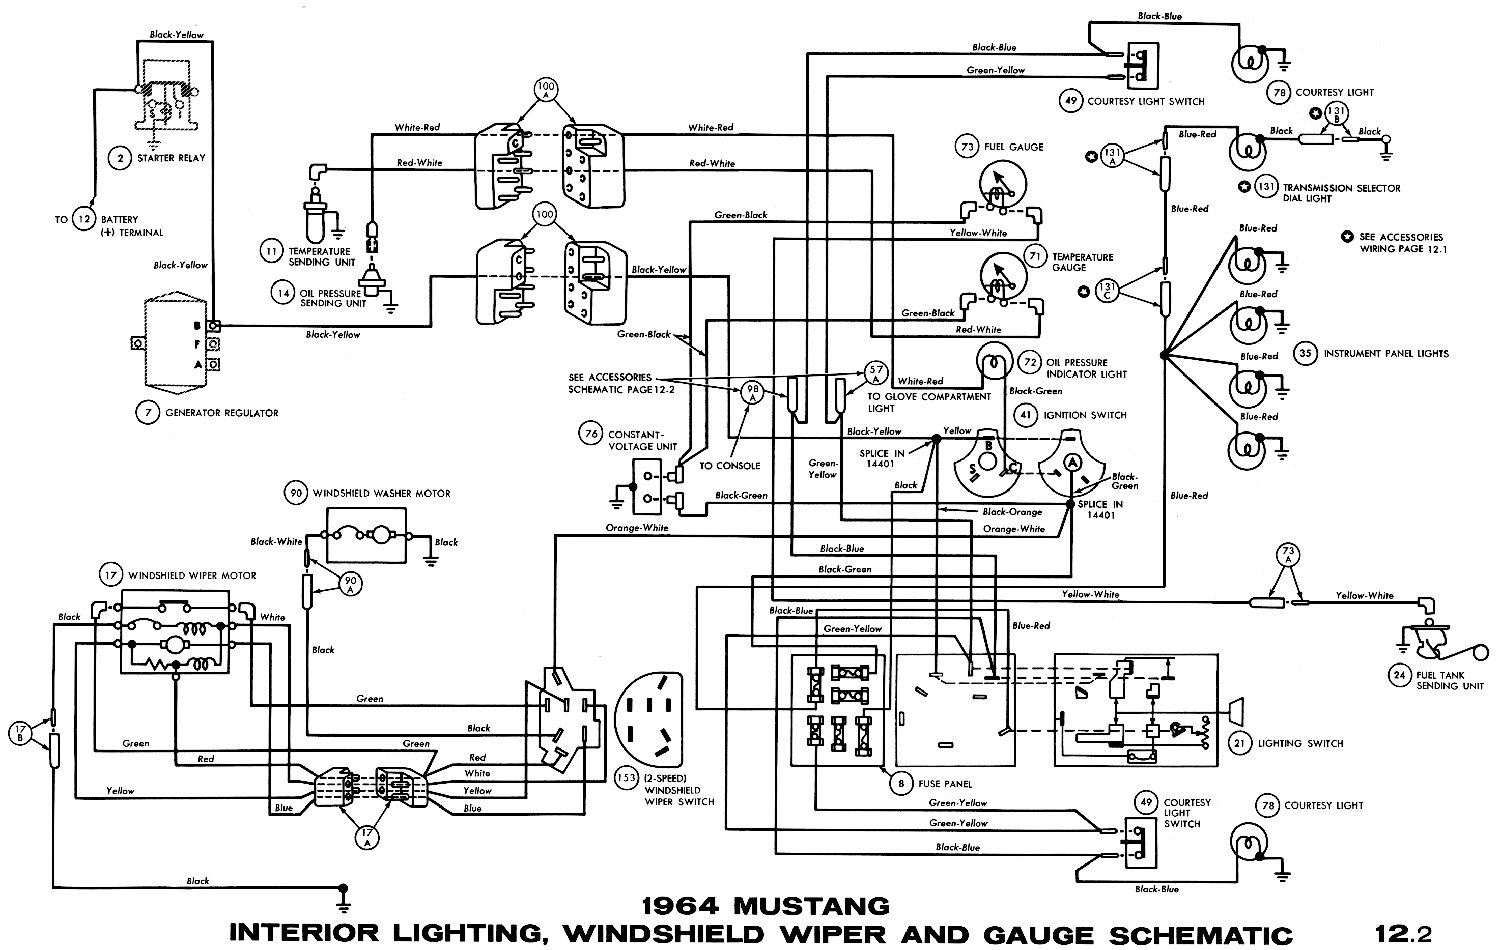 69 mustang ignition switch wiring schematic